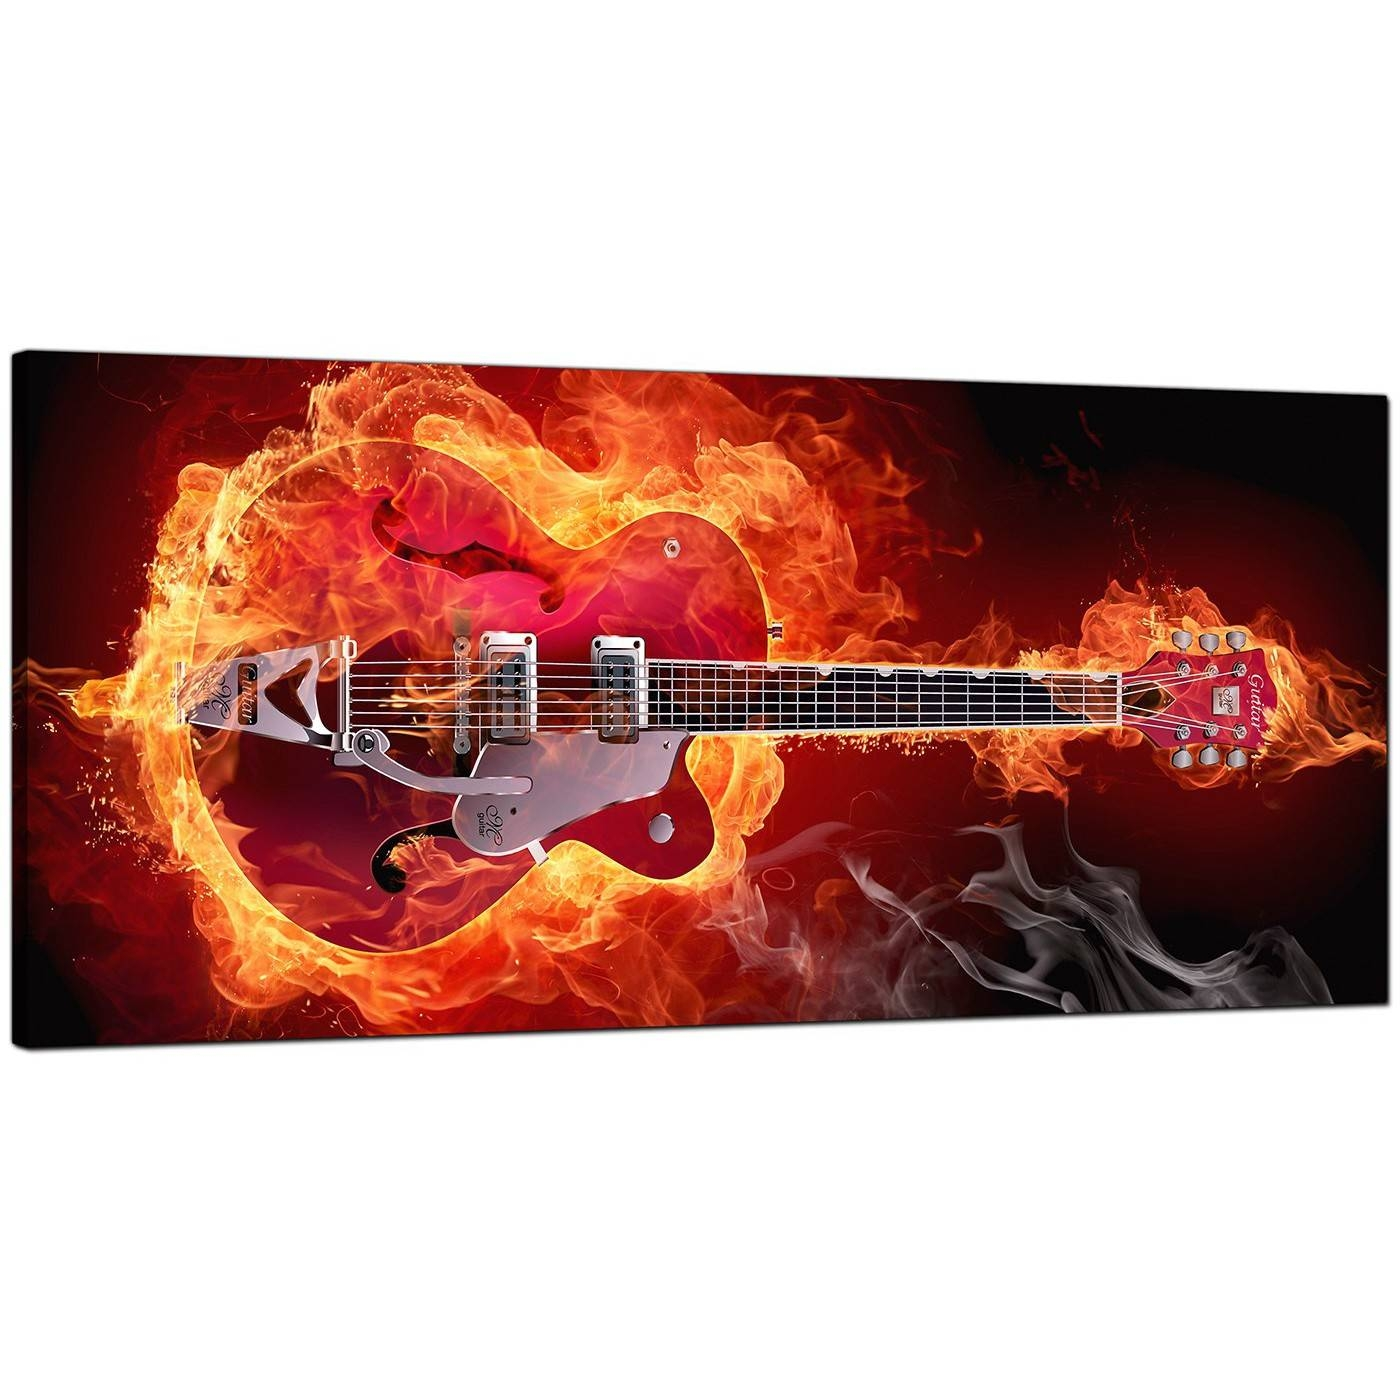 Large Orange Canvas Pictures Of An Electric Guitar On Fire Within Latest Guitar Canvas Wall Art (View 19 of 20)